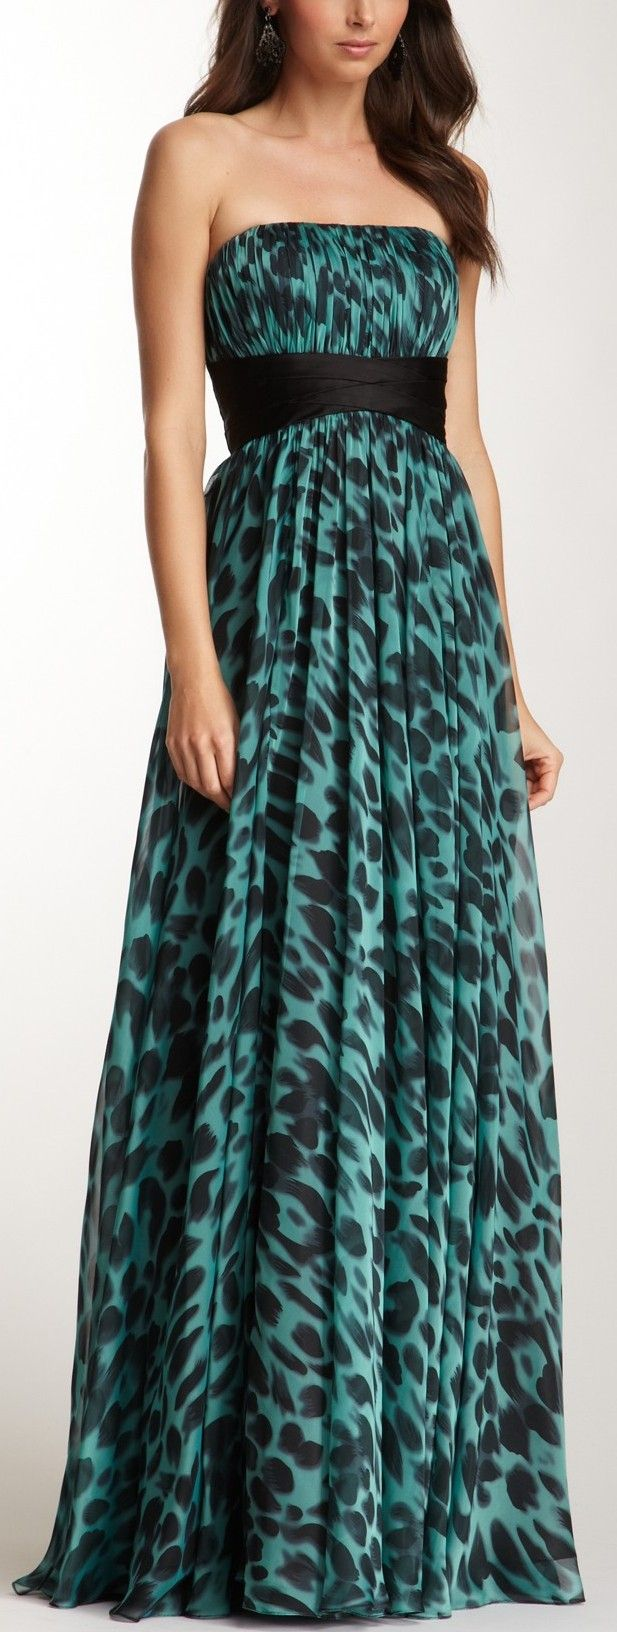 Long Strapless Graphic Print Sheer Gown